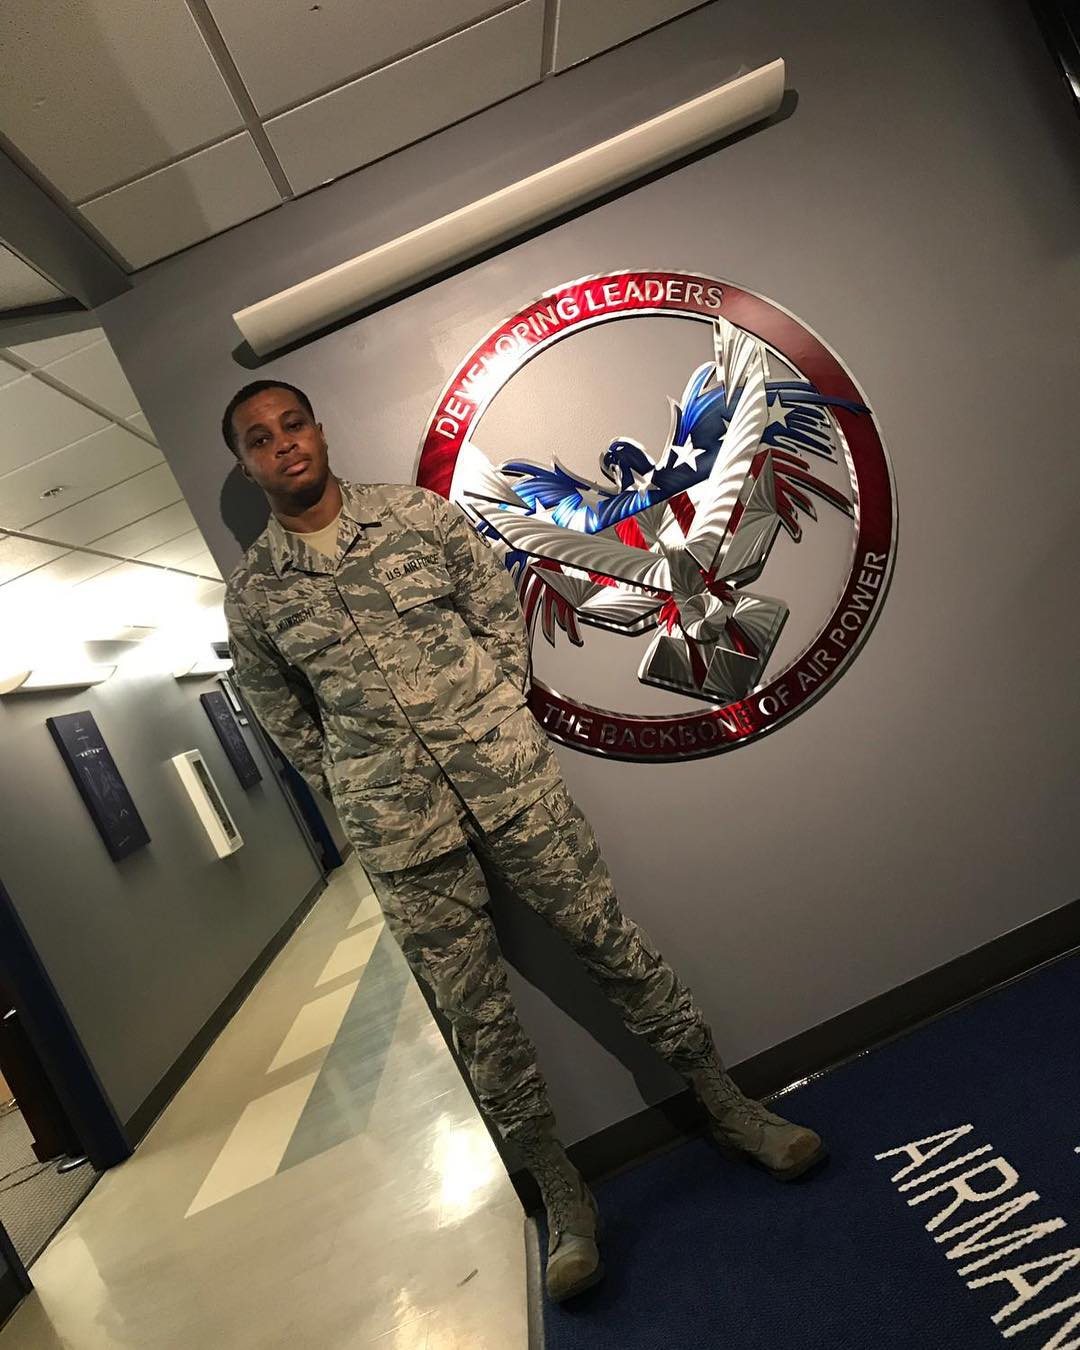 nollywood star bukky wright s son bags degree from united states air force photos - Nollywood Actress Bukky Wright's Son Bags Degree From The United States Air Force